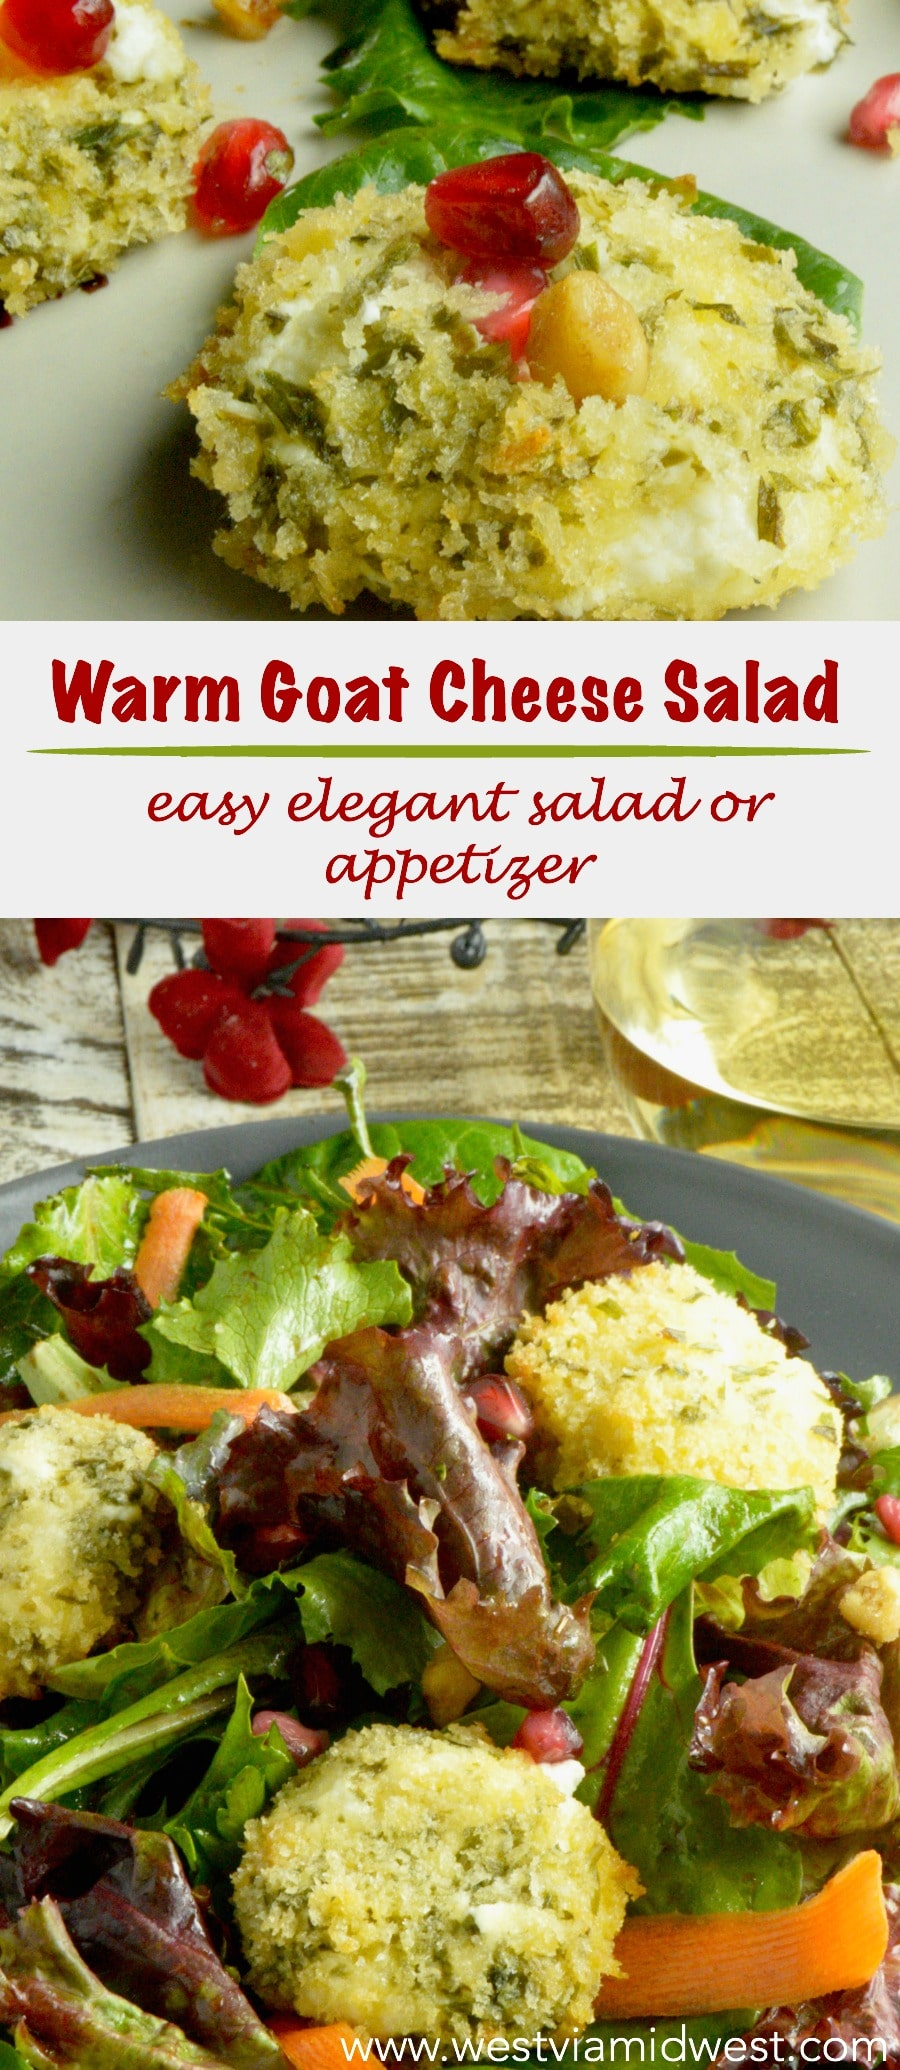 Warm Goat Cheese Salad is an easy elegant offering for any entertaining. Baked Crispy Panko crust surrounds a tangy, herb coated cheese over simple salad greens. A perennial favorite your guests will ask for again and again! #appetizers #salad www.westviamidwest.com #holidaysalad #christmas #ad #groceryoutlet